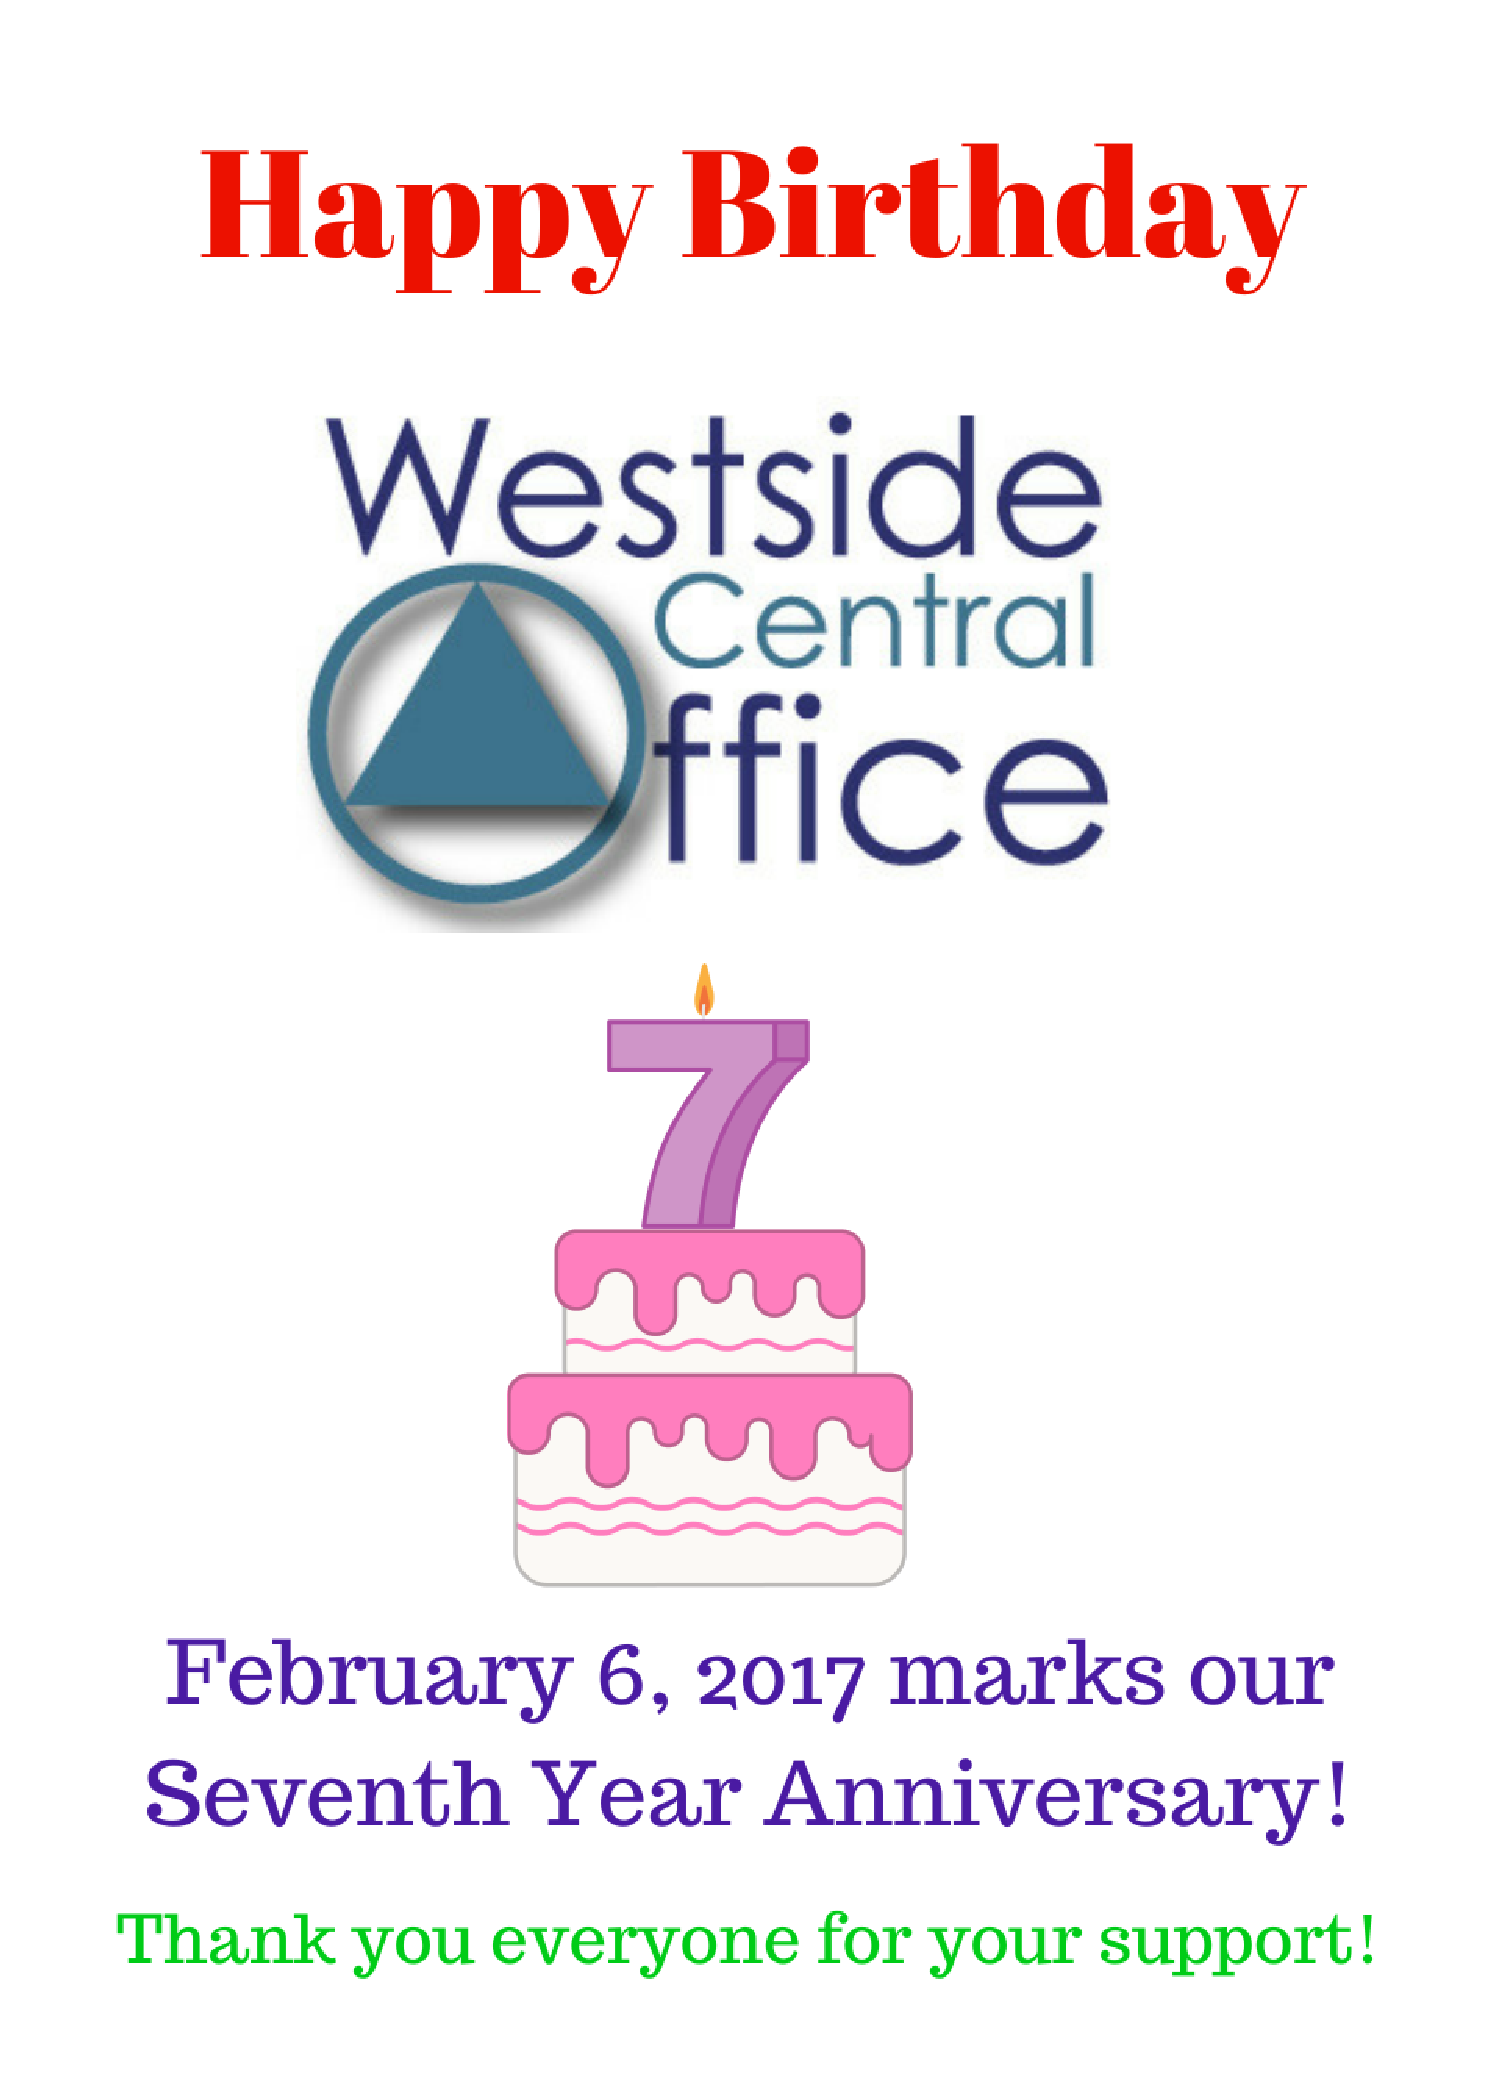 February 6, 2017 marks Westside Central Office's Seven Year Anniversary!